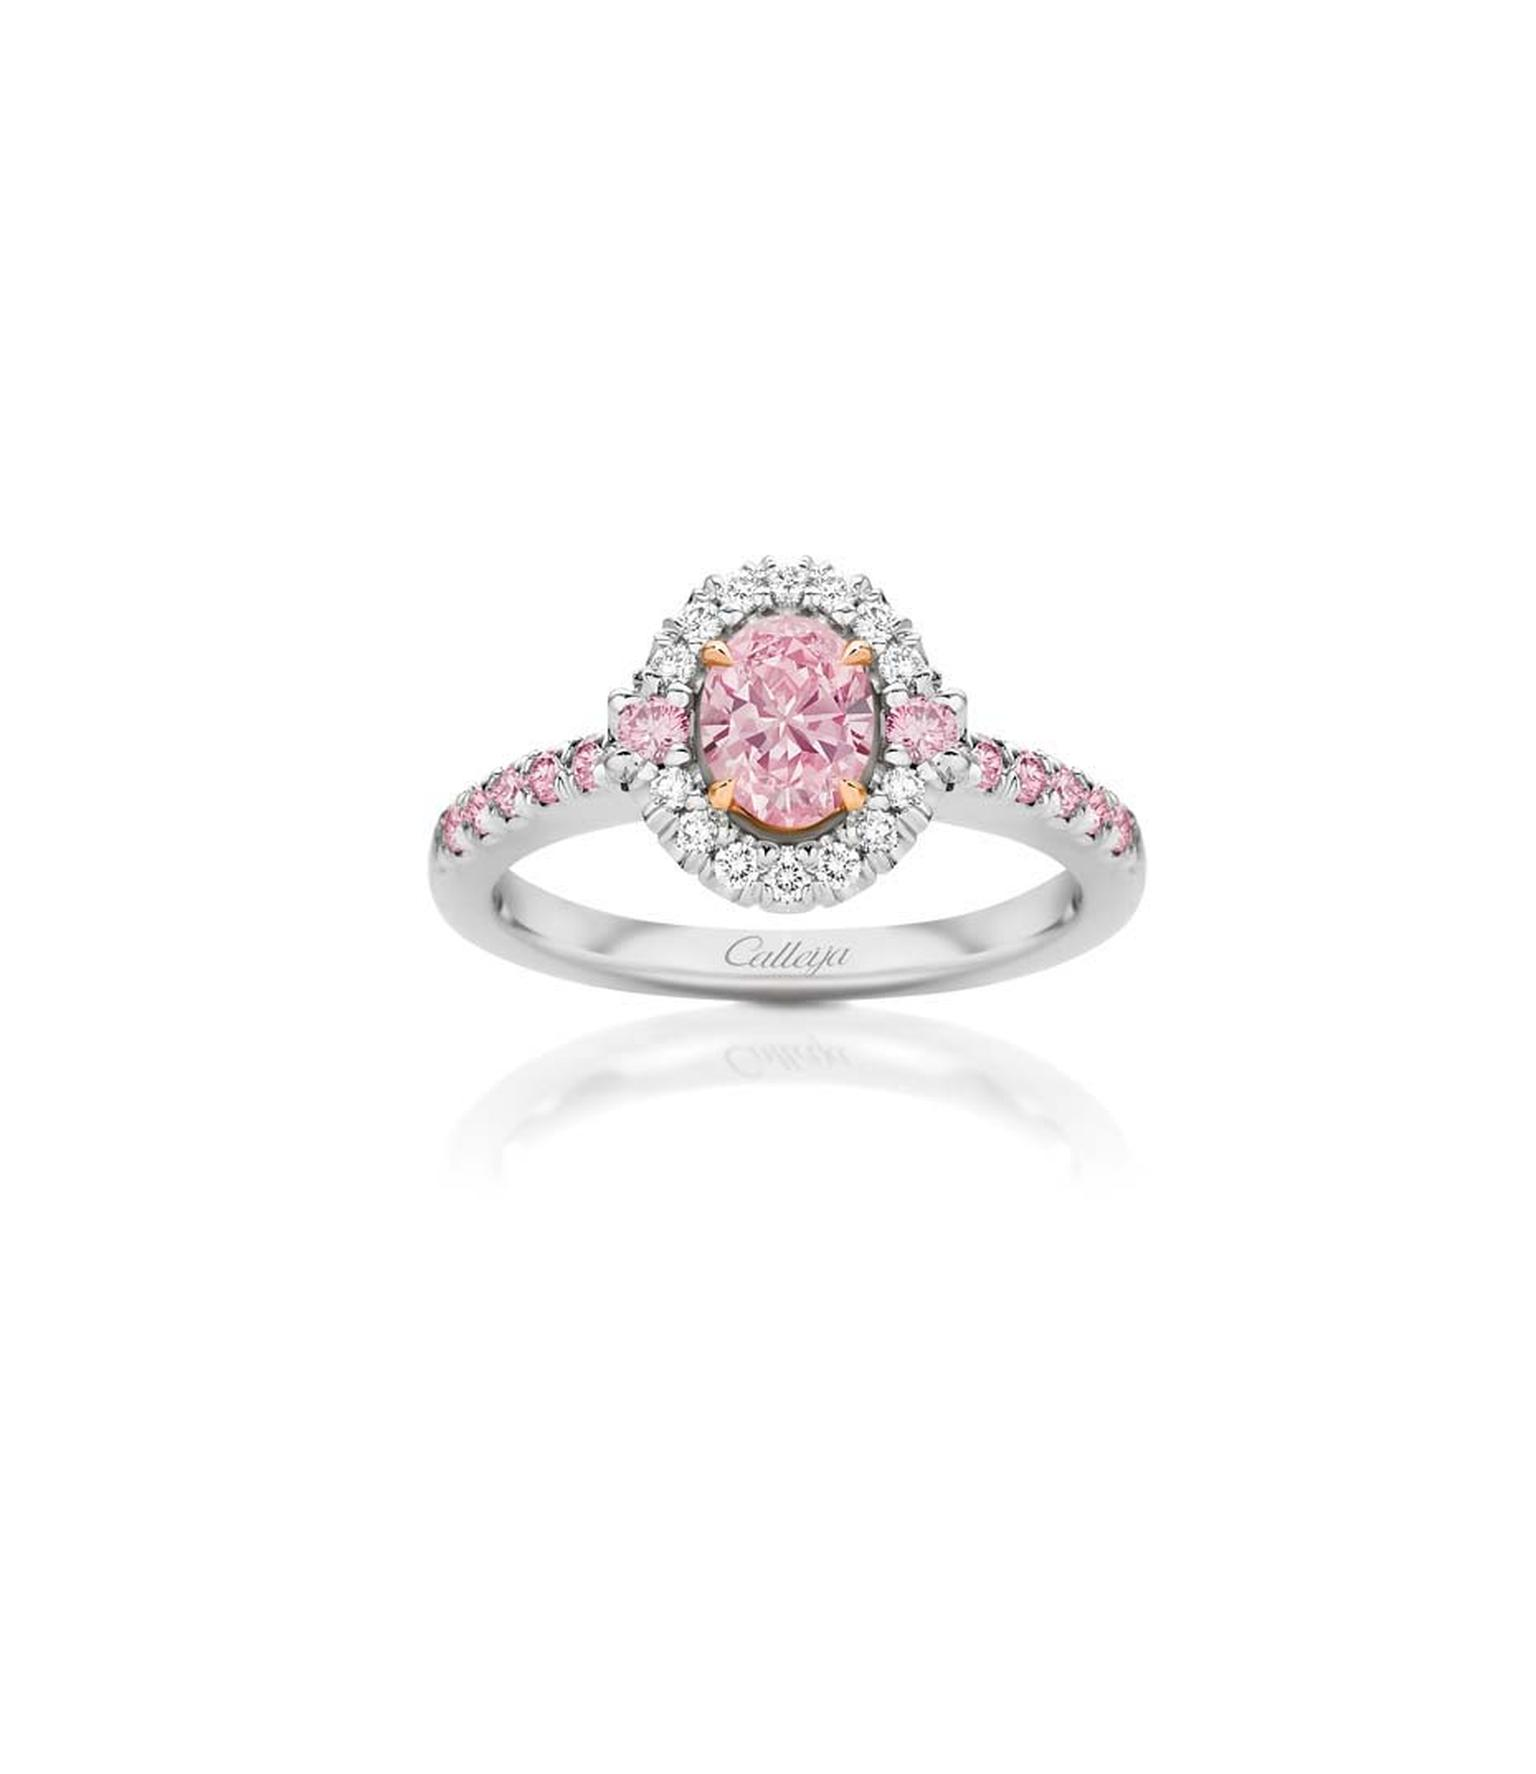 Calleija Elyssa pink diamond engagement ring featuring a brilliant-cut Fancy Intense Purplish Pink diamond centre surrounded by pink and white diamonds.